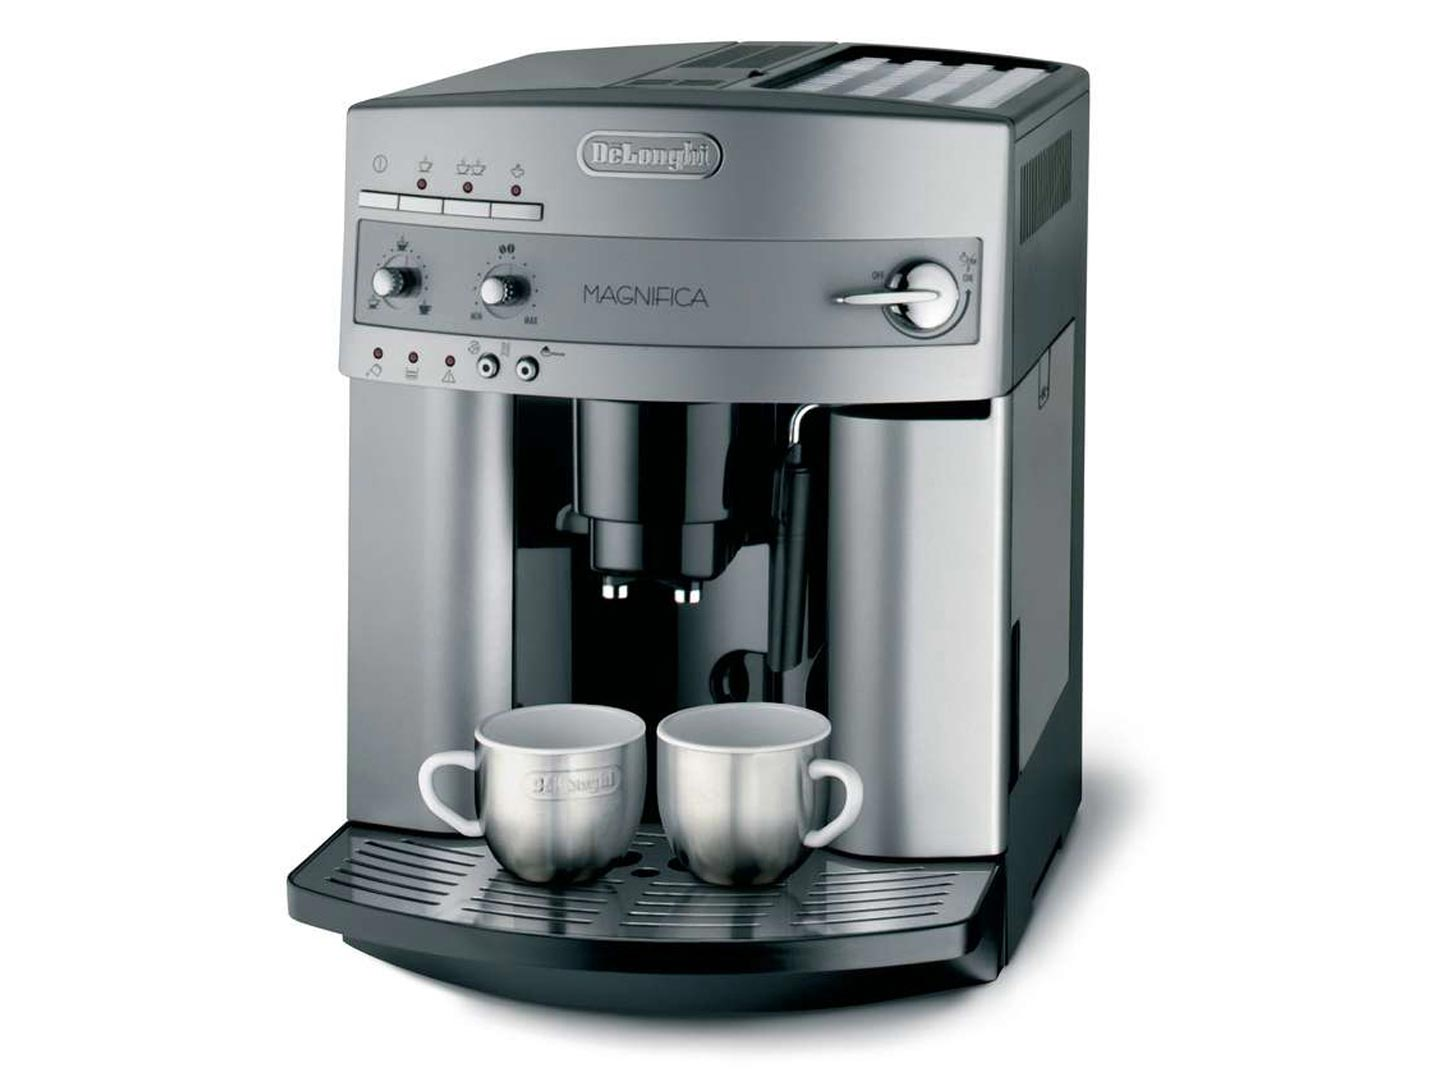 Delonghi Coffee Maker First Use : Bean to cup coffee machines Gaggia Titanium 74889 Delonghi EAM 3200